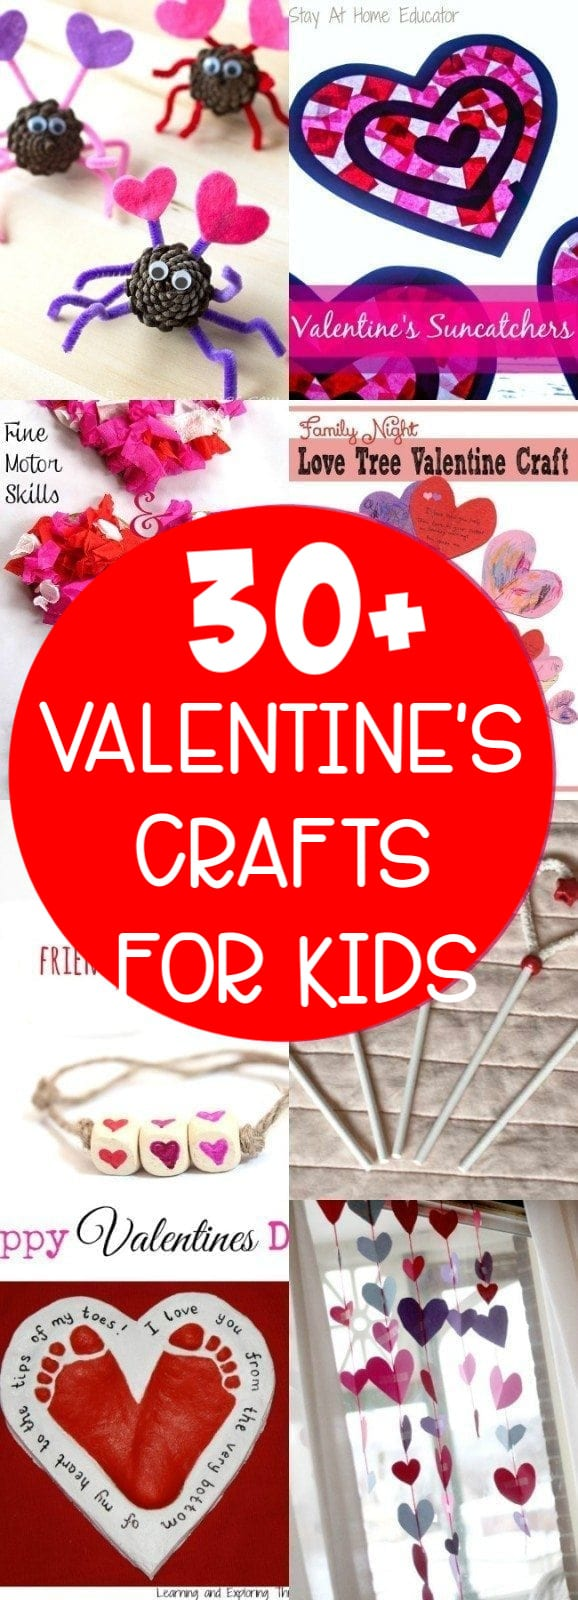 30+ Valentine's Day Crafts for kids - so many fun and cute ideas! via @clarkscondensed